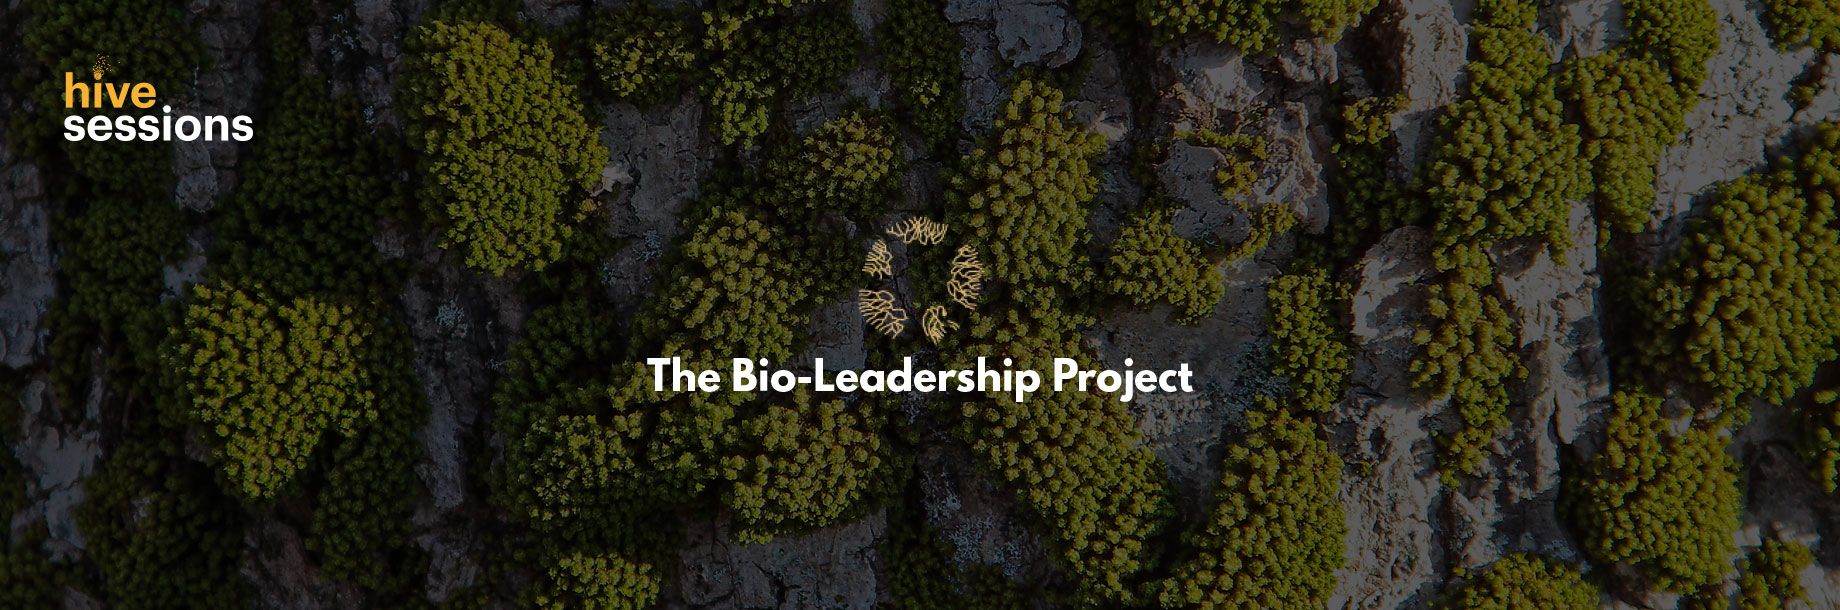 hivesessions-bioleadership